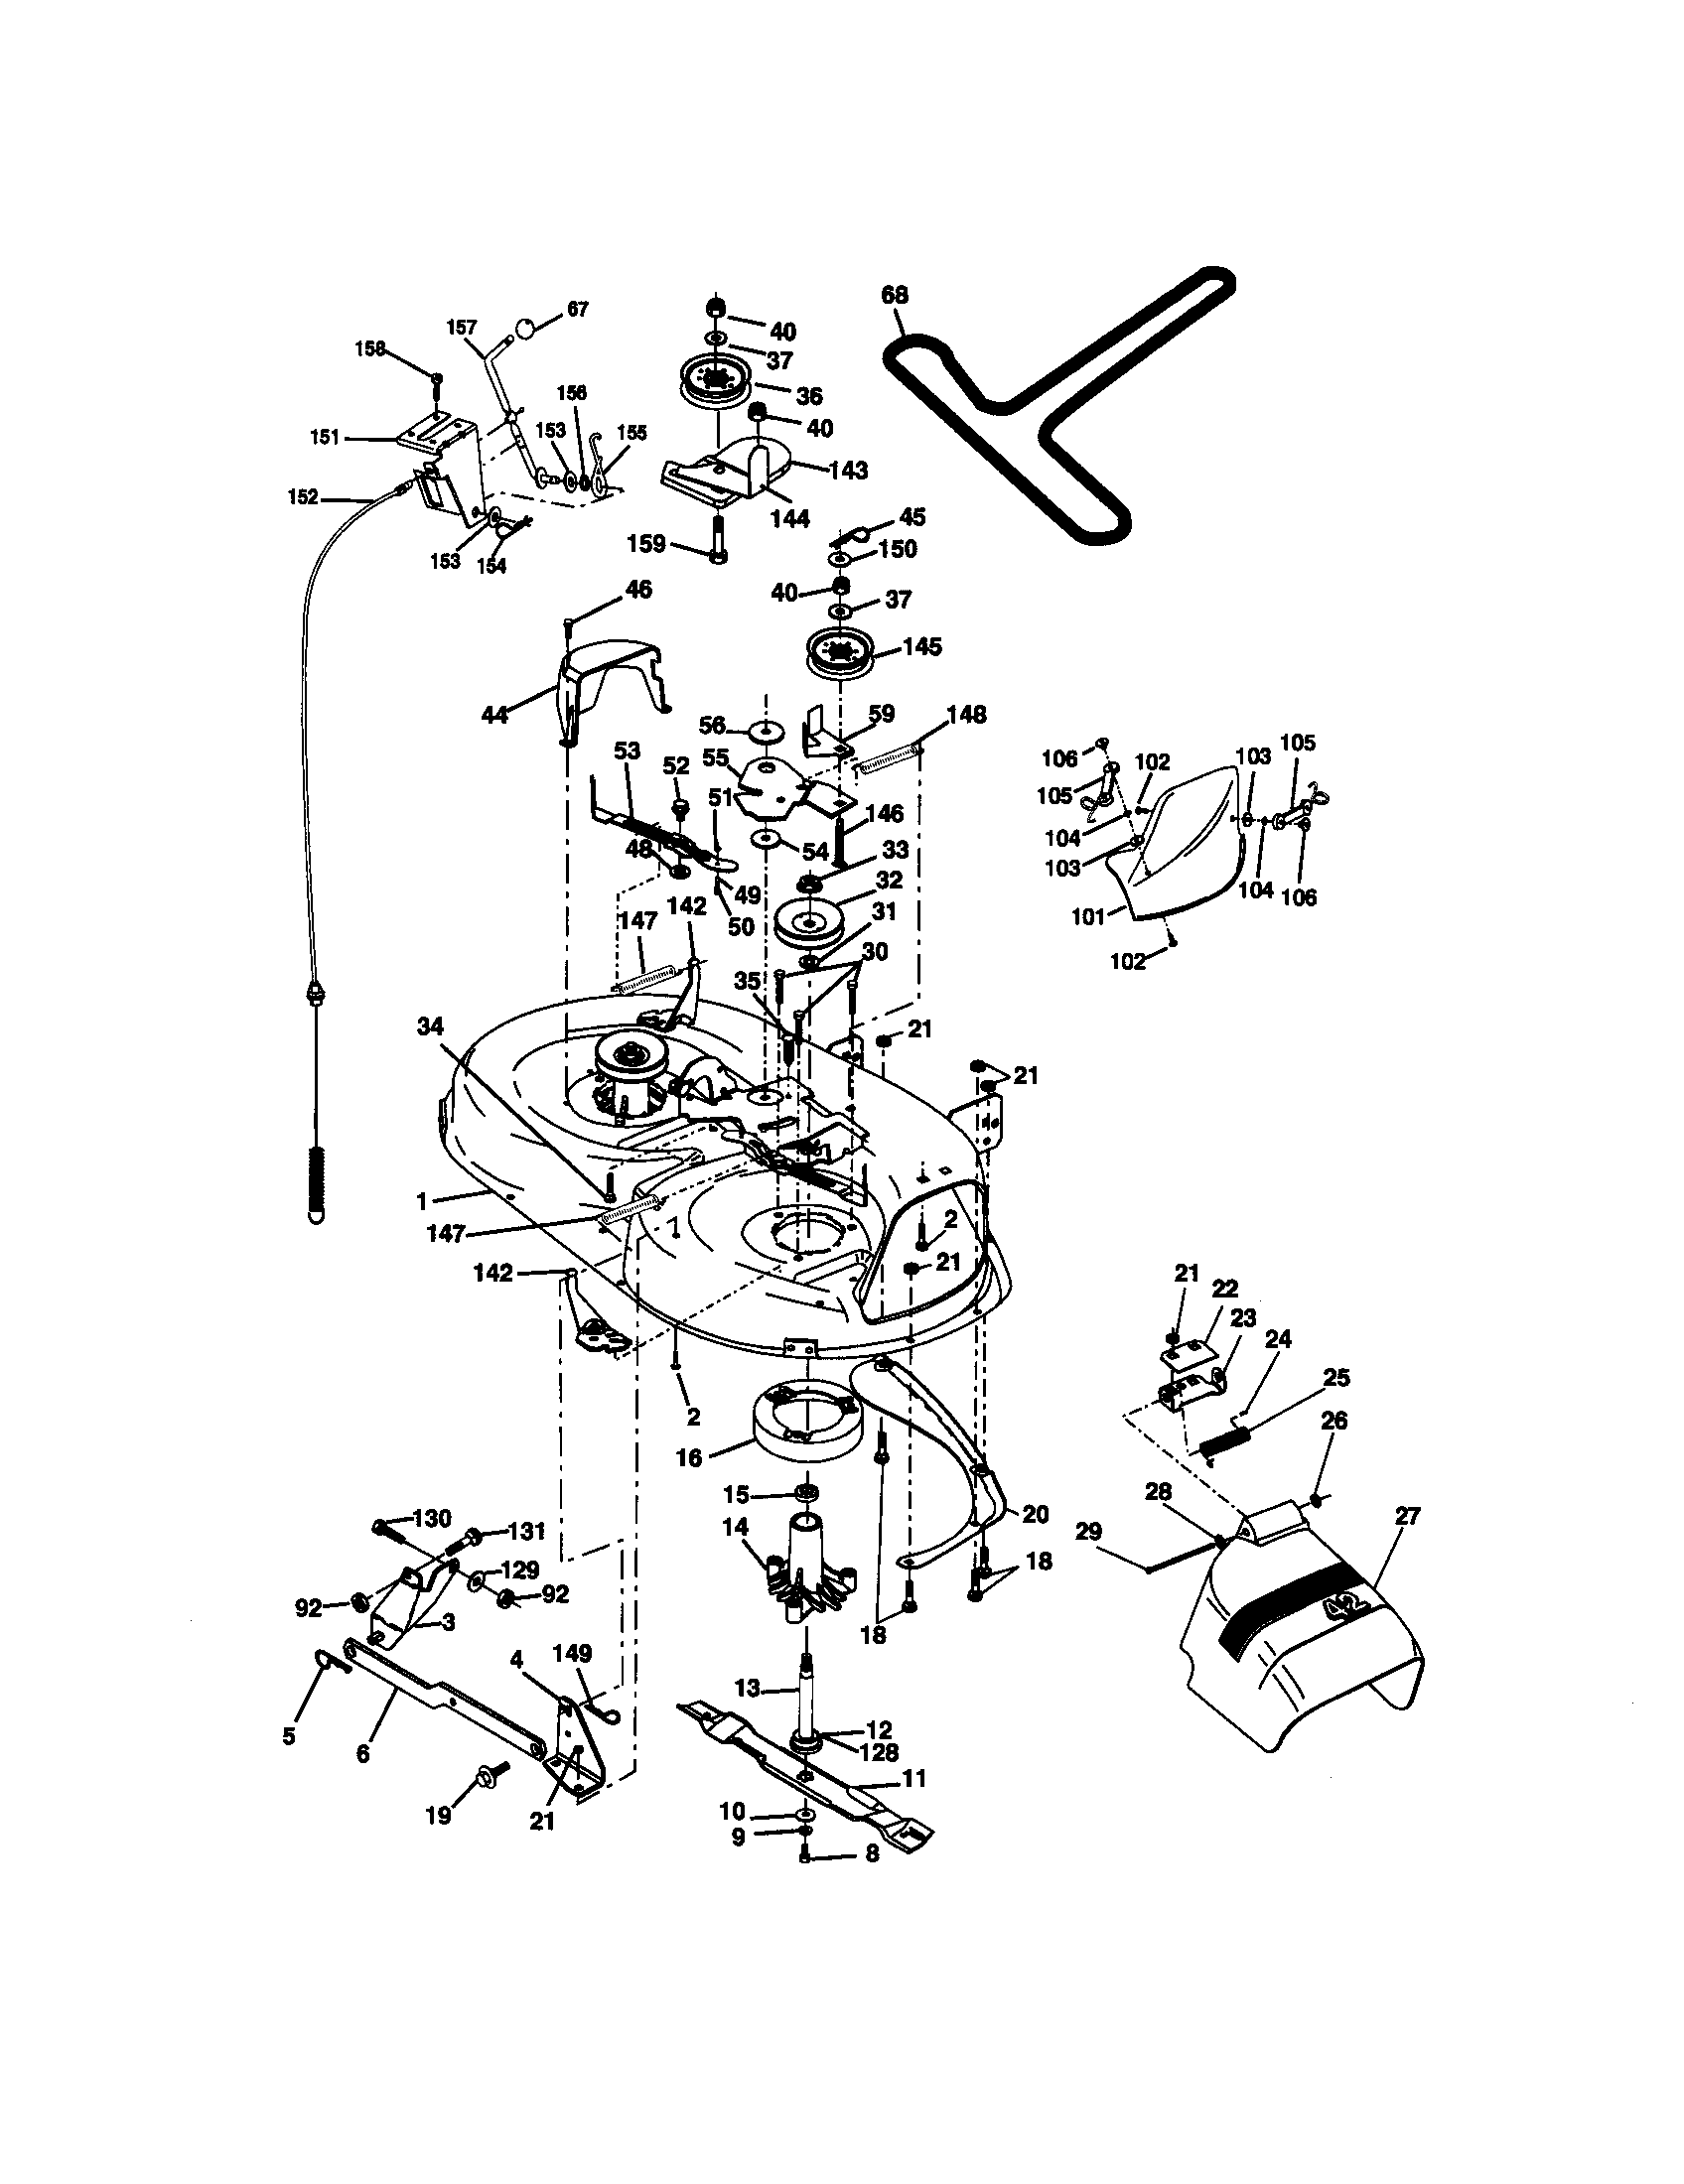 hight resolution of wiring diagram for lt1000